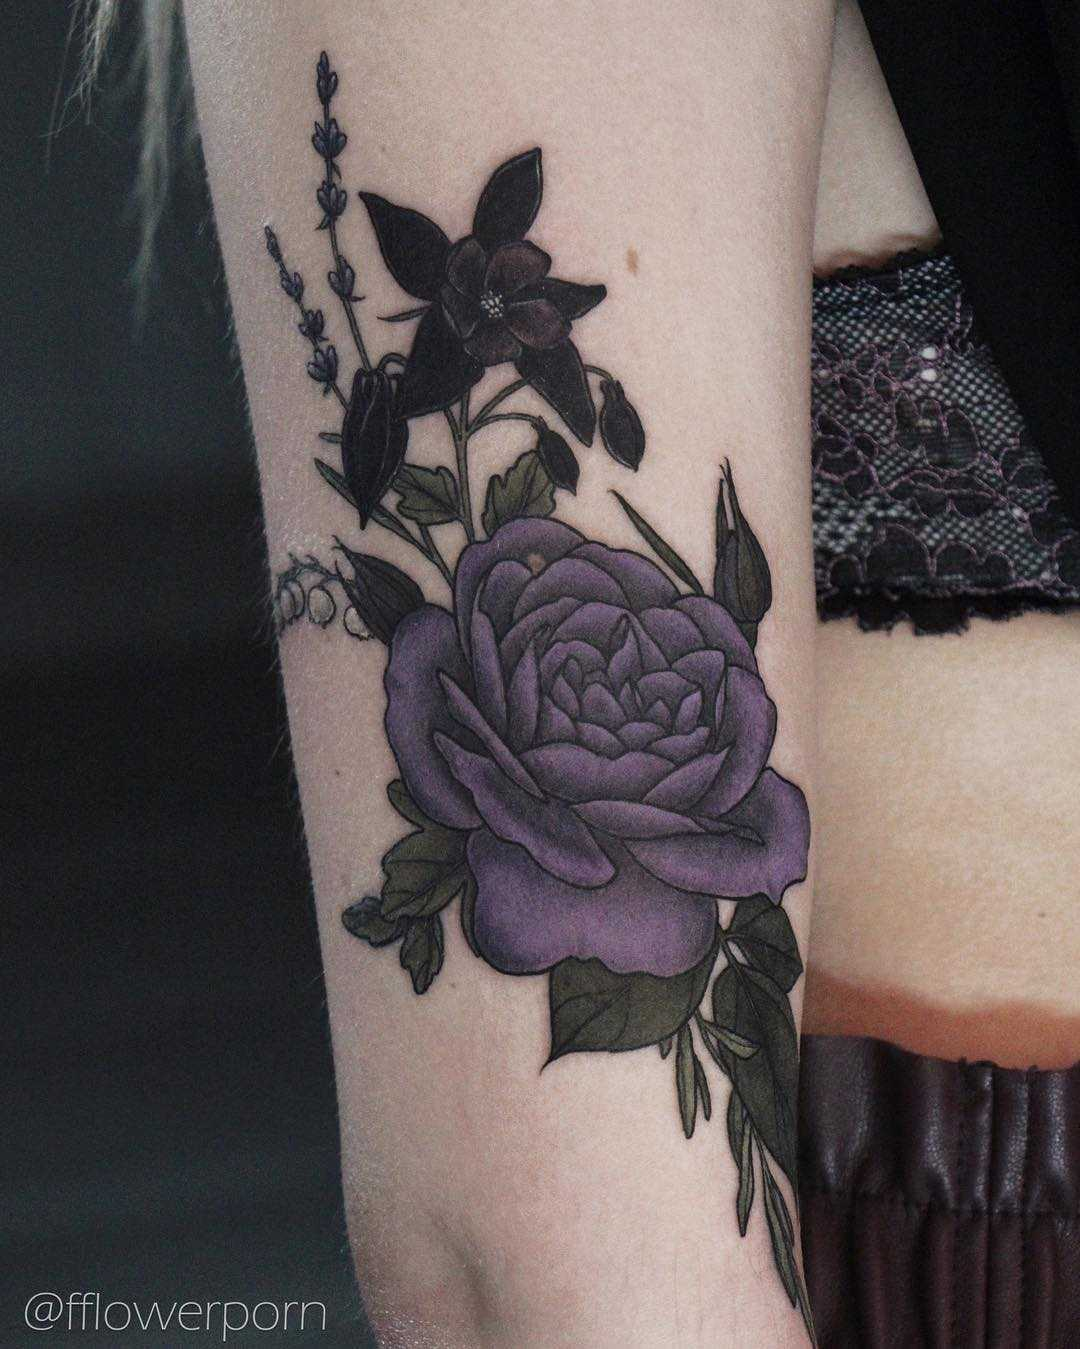 Garden rose, aquilegia, lavender, and lily of the valley tattoo